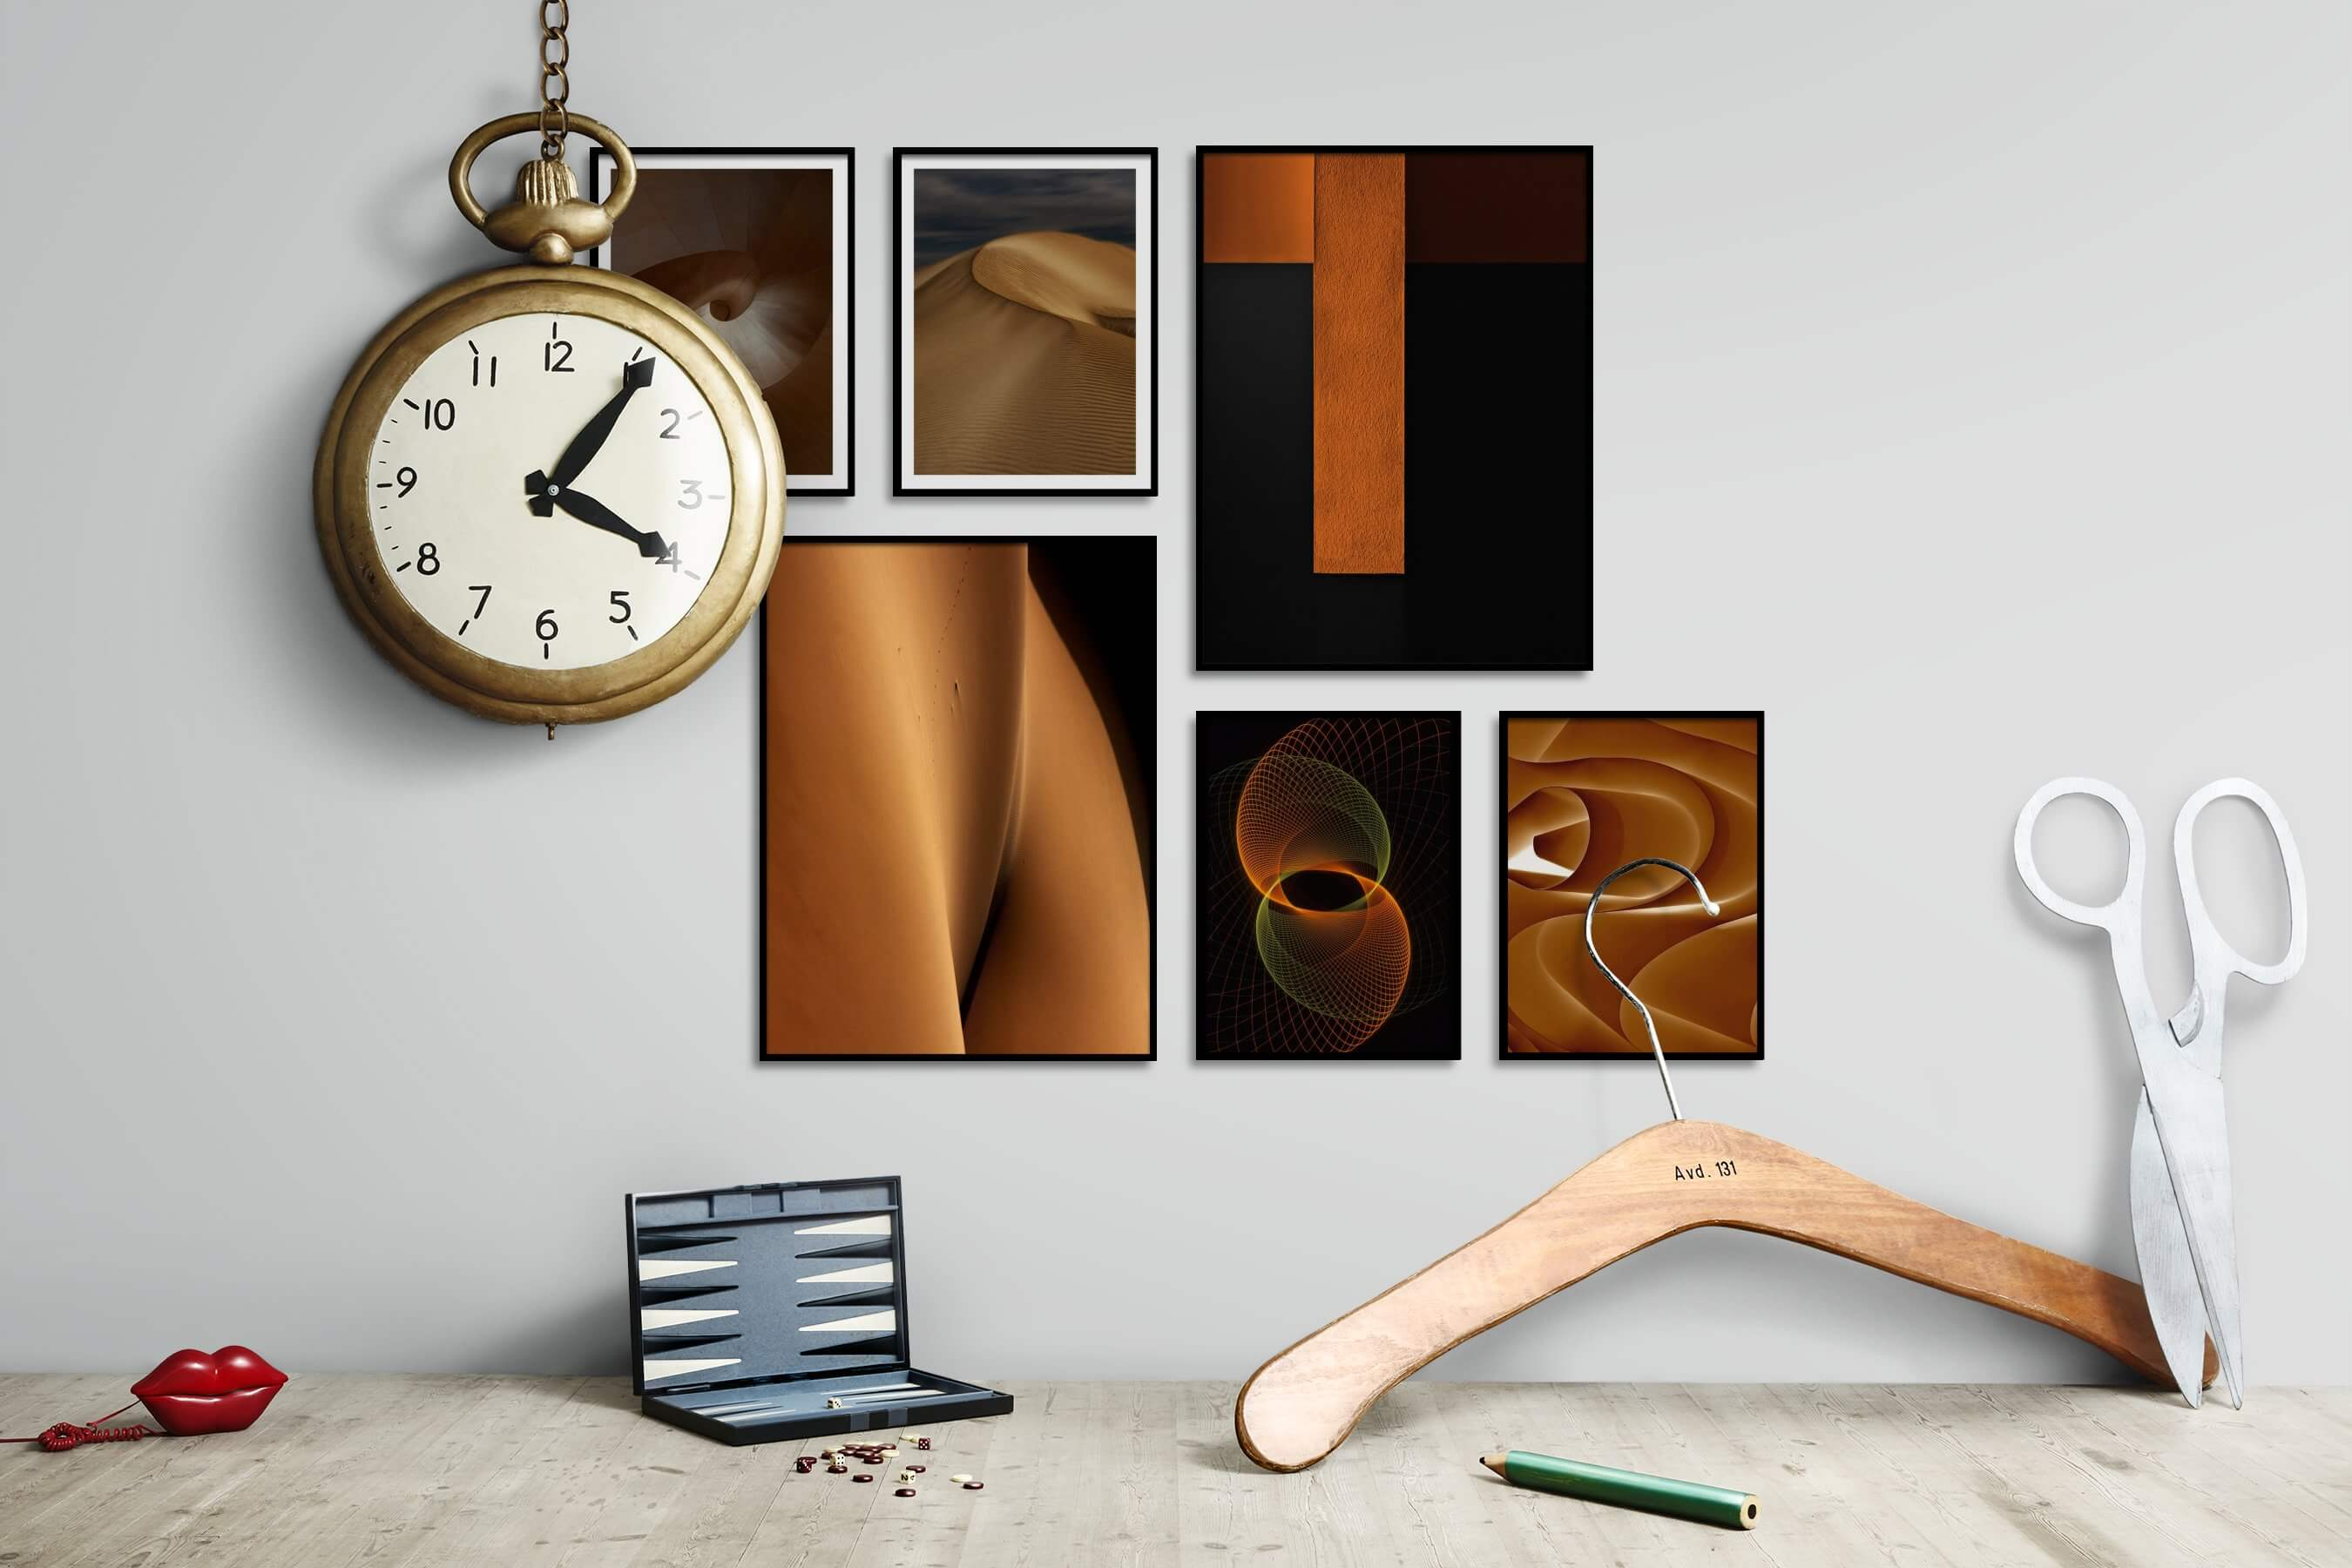 Gallery wall idea with six framed pictures arranged on a wall depicting For the Minimalist, Nature, For the Moderate, Dark Tones, and For the Maximalist